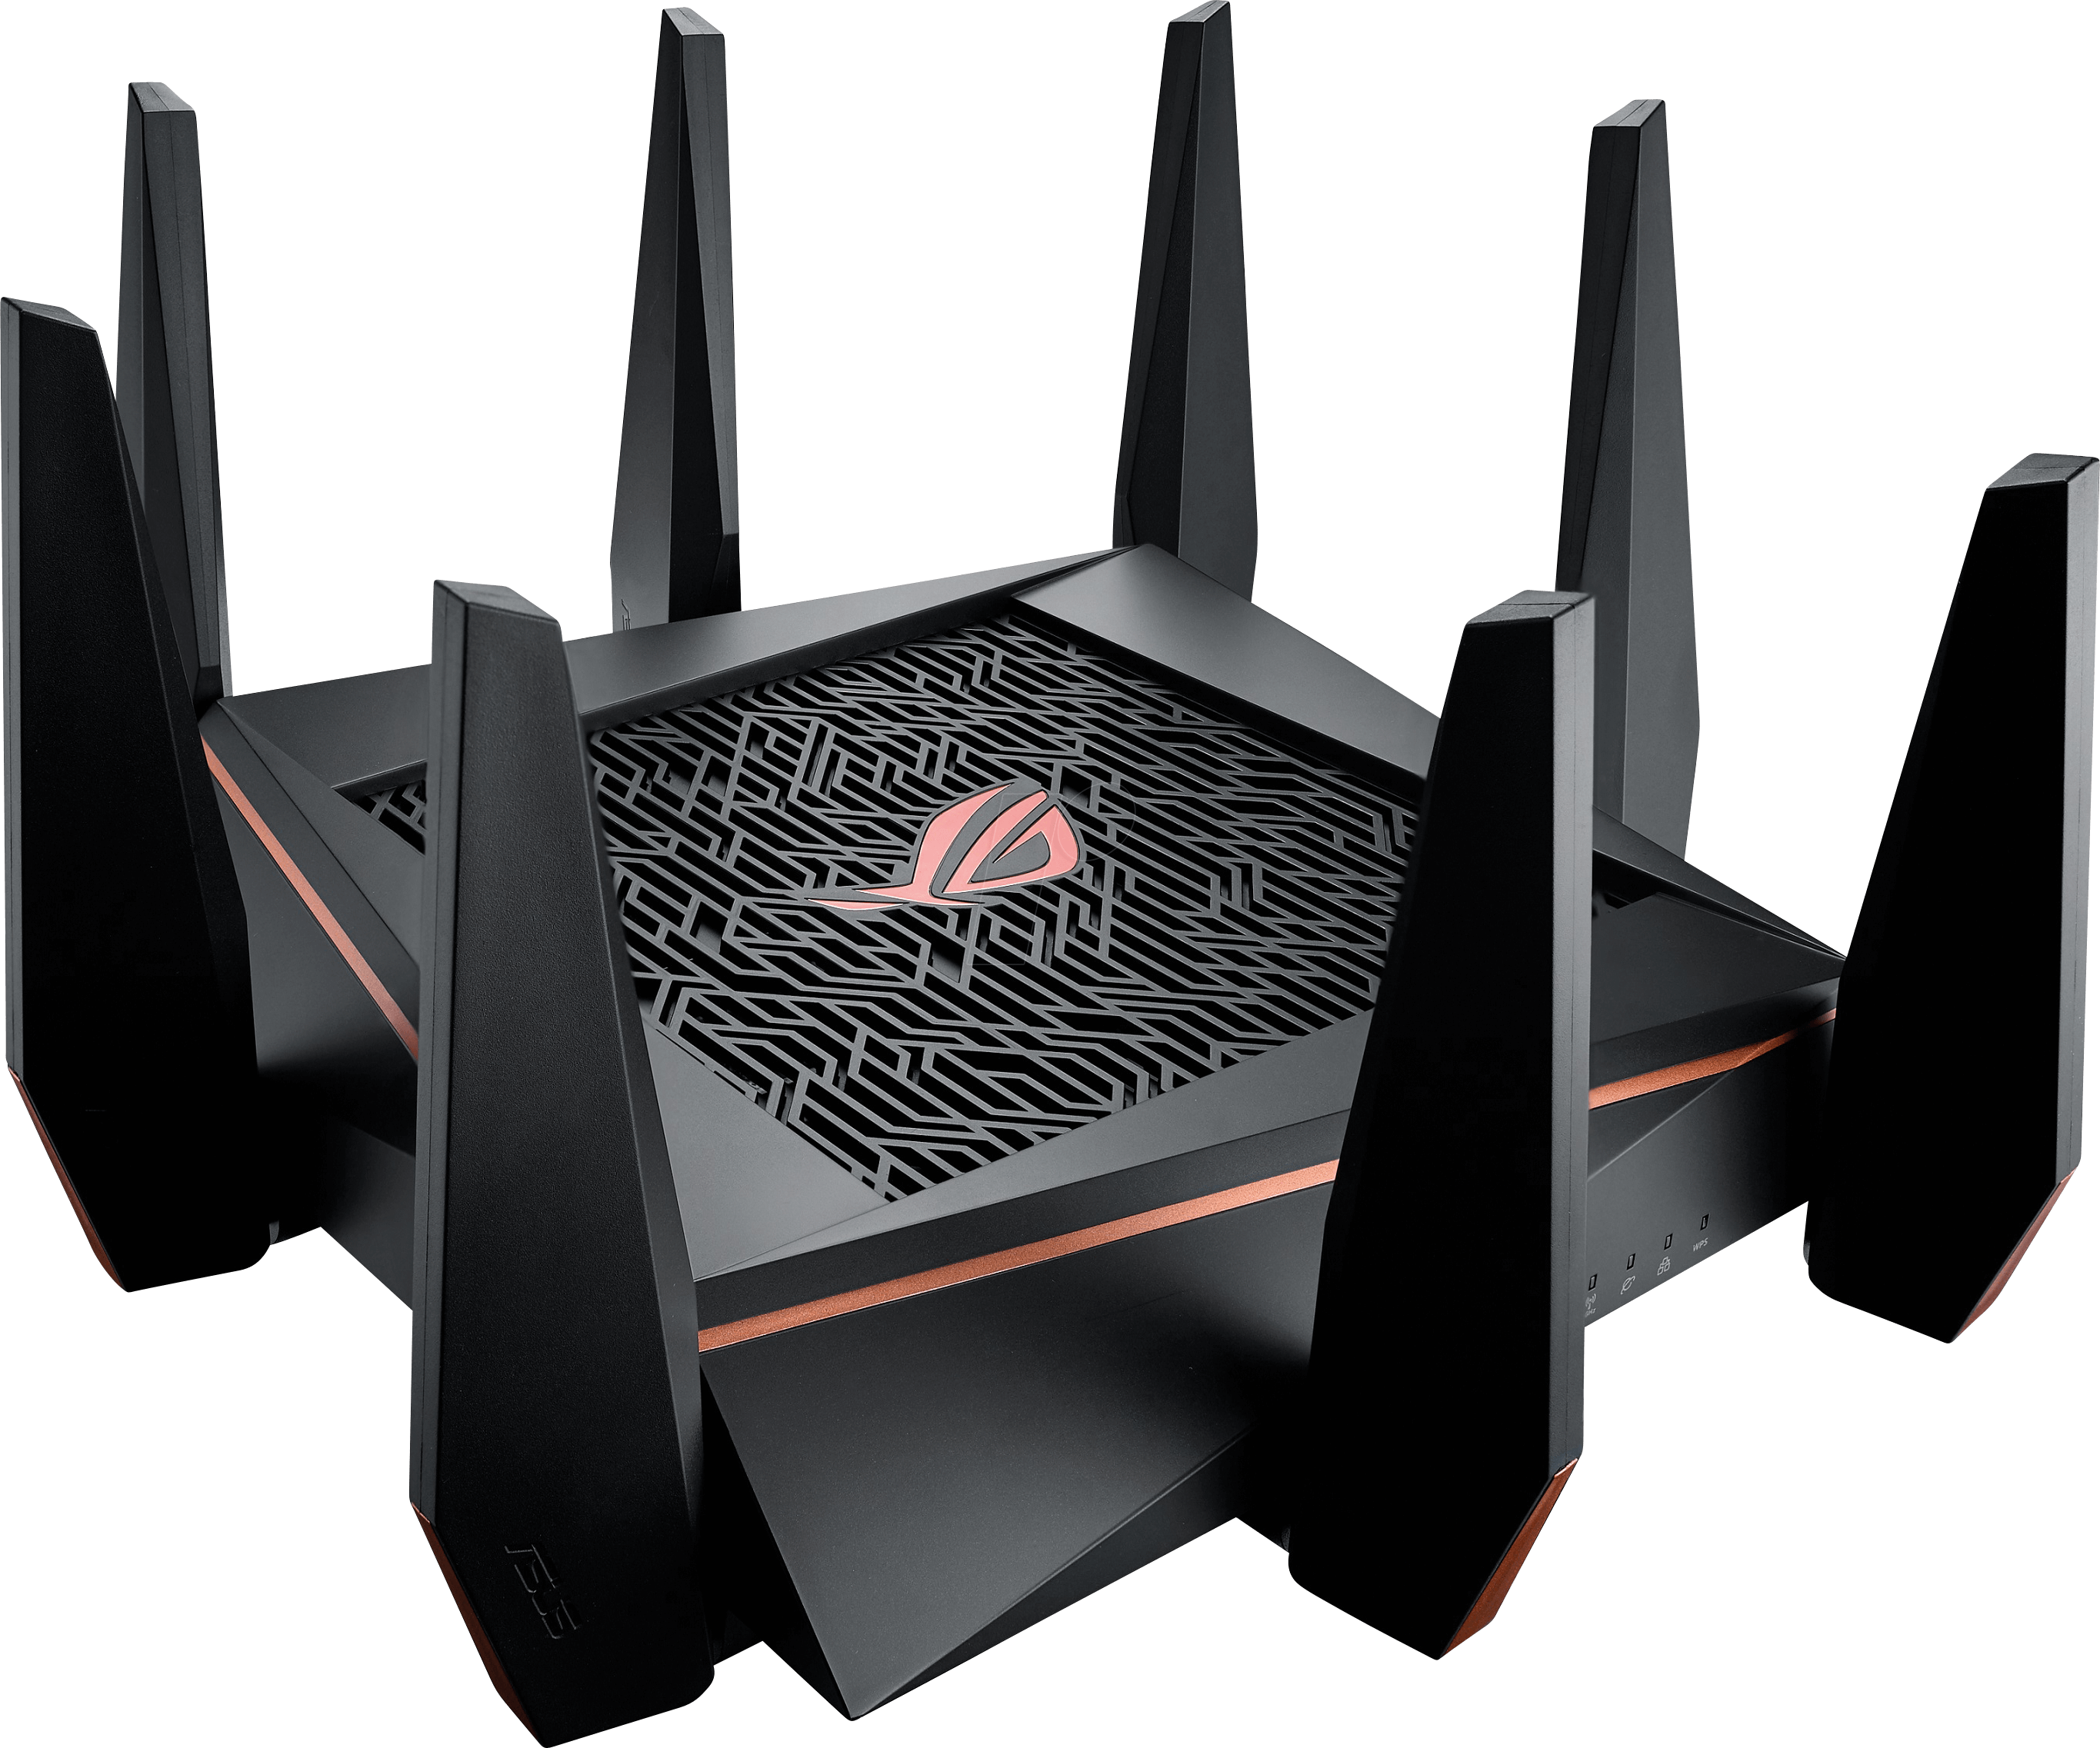 asus gt ac5300 wlan router 2 4 5 ghz 5300 mbit s bei. Black Bedroom Furniture Sets. Home Design Ideas